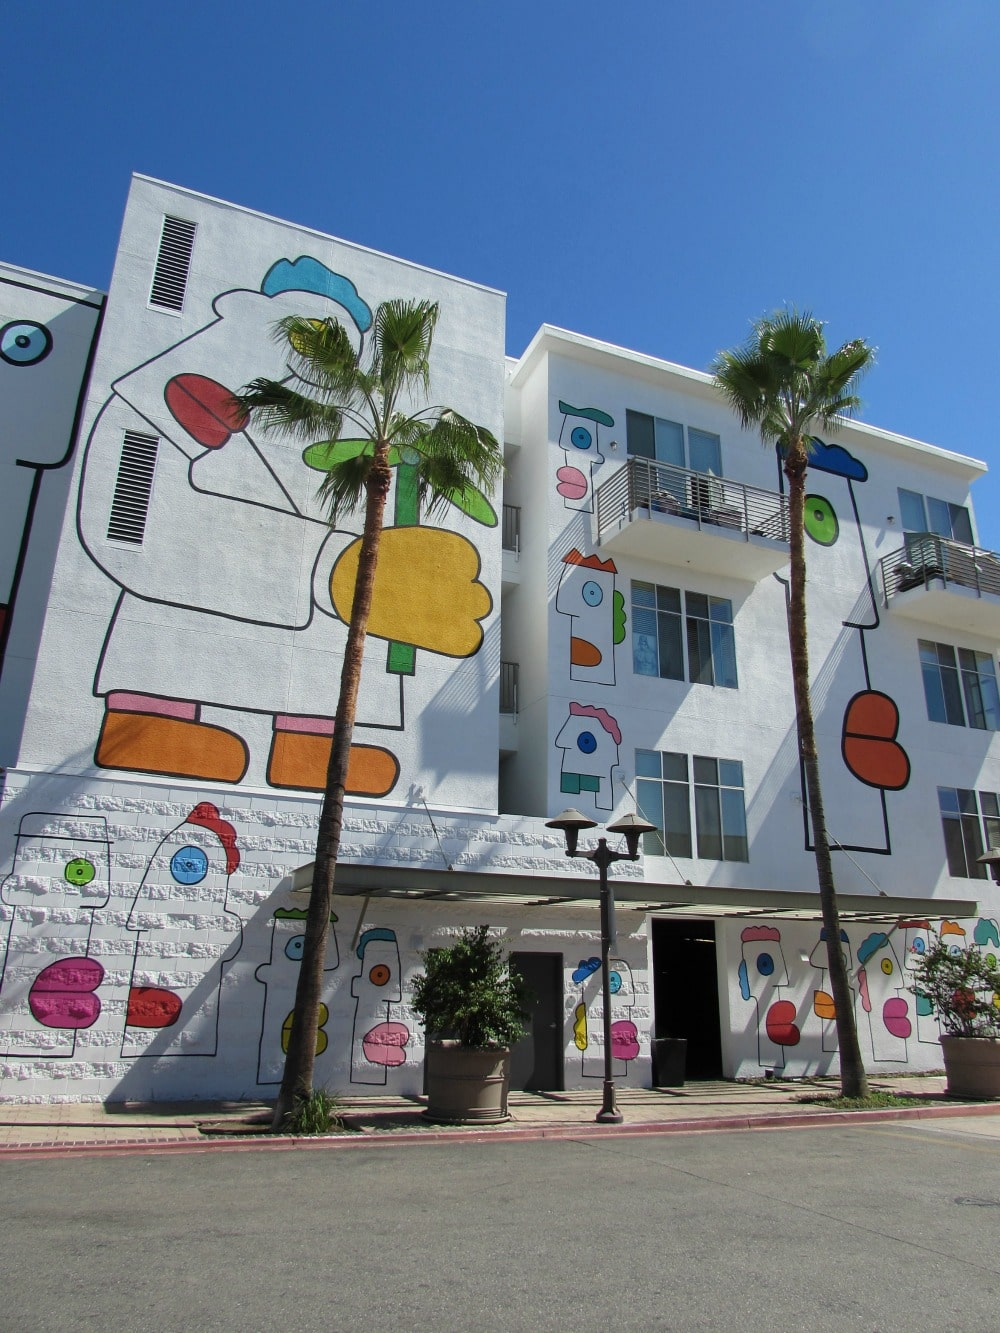 My Photo Collection of Los Angeles Street Art and Murals